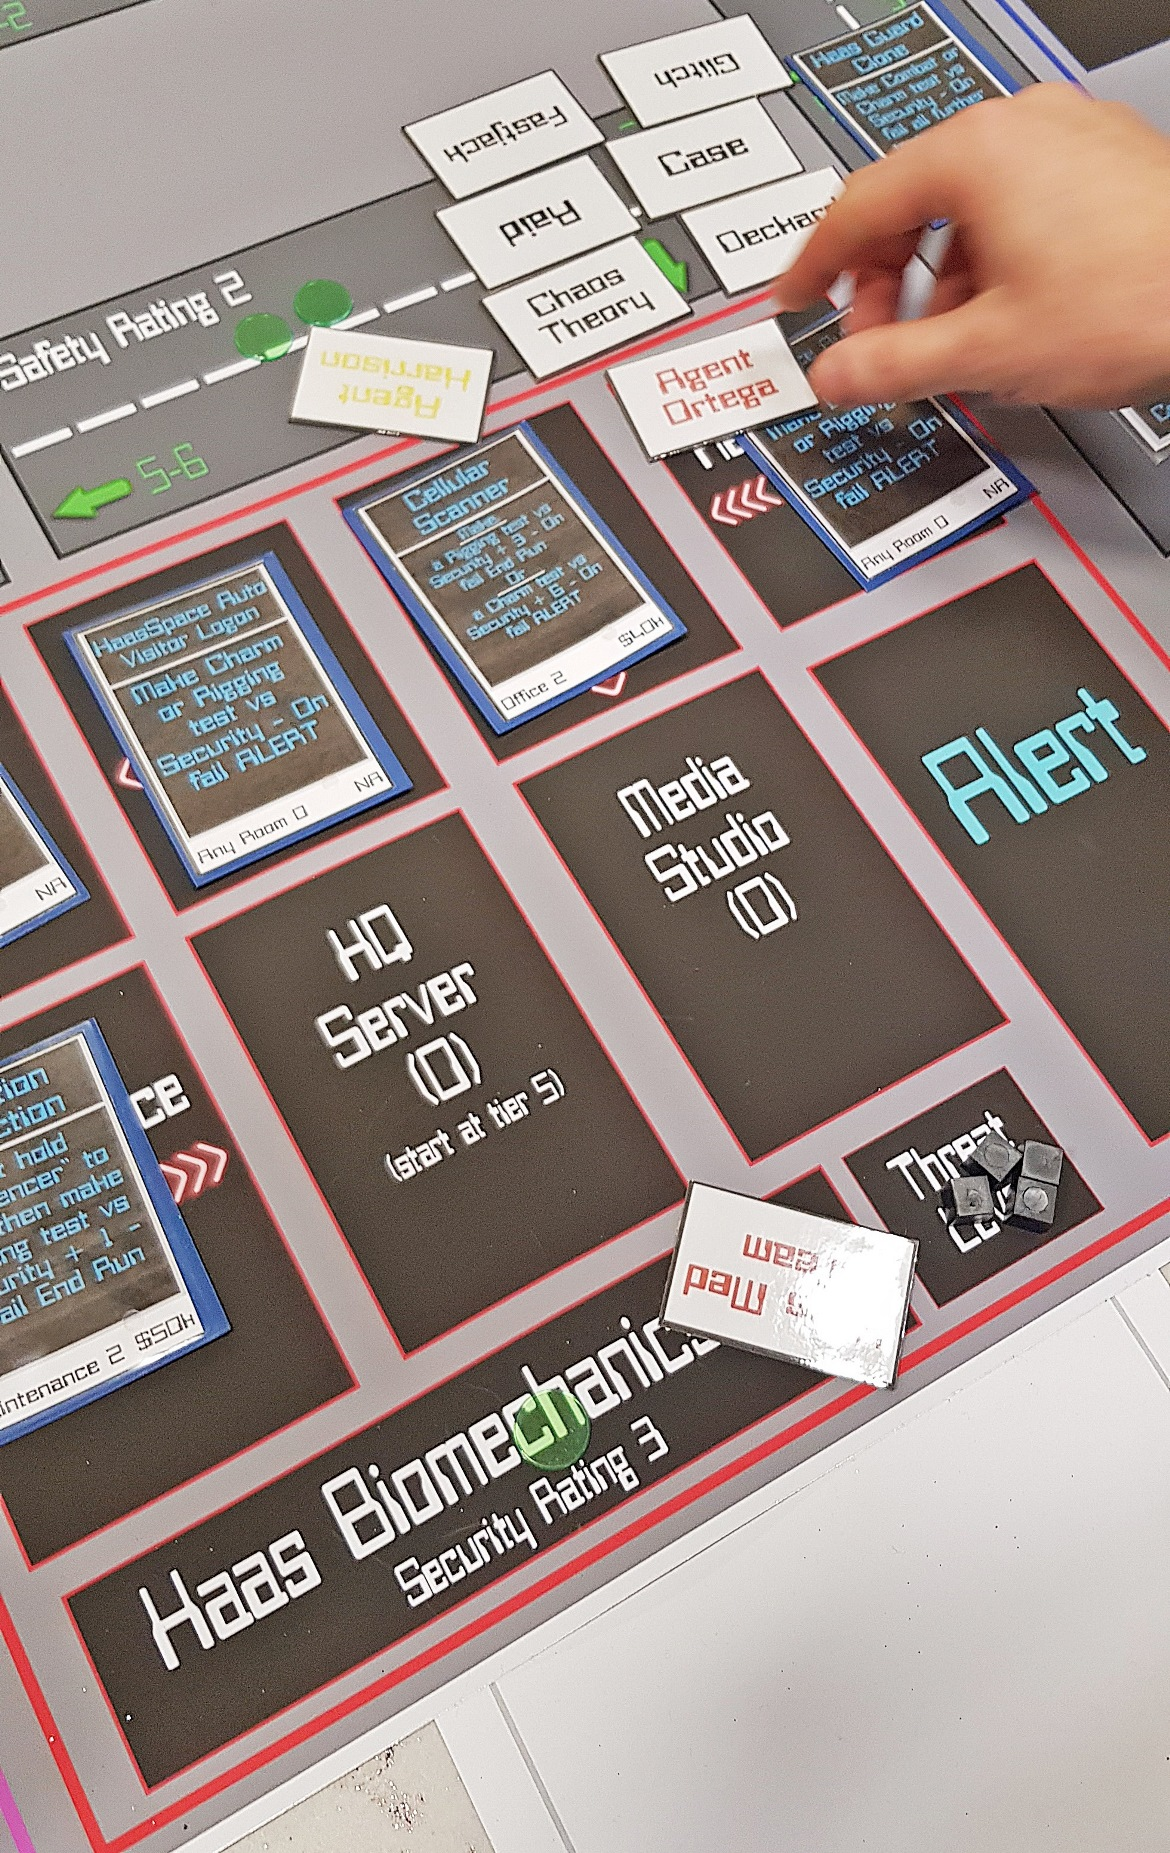 Run on Haas - Mirrorshades megagame after action report by BeckyBecky Blogs